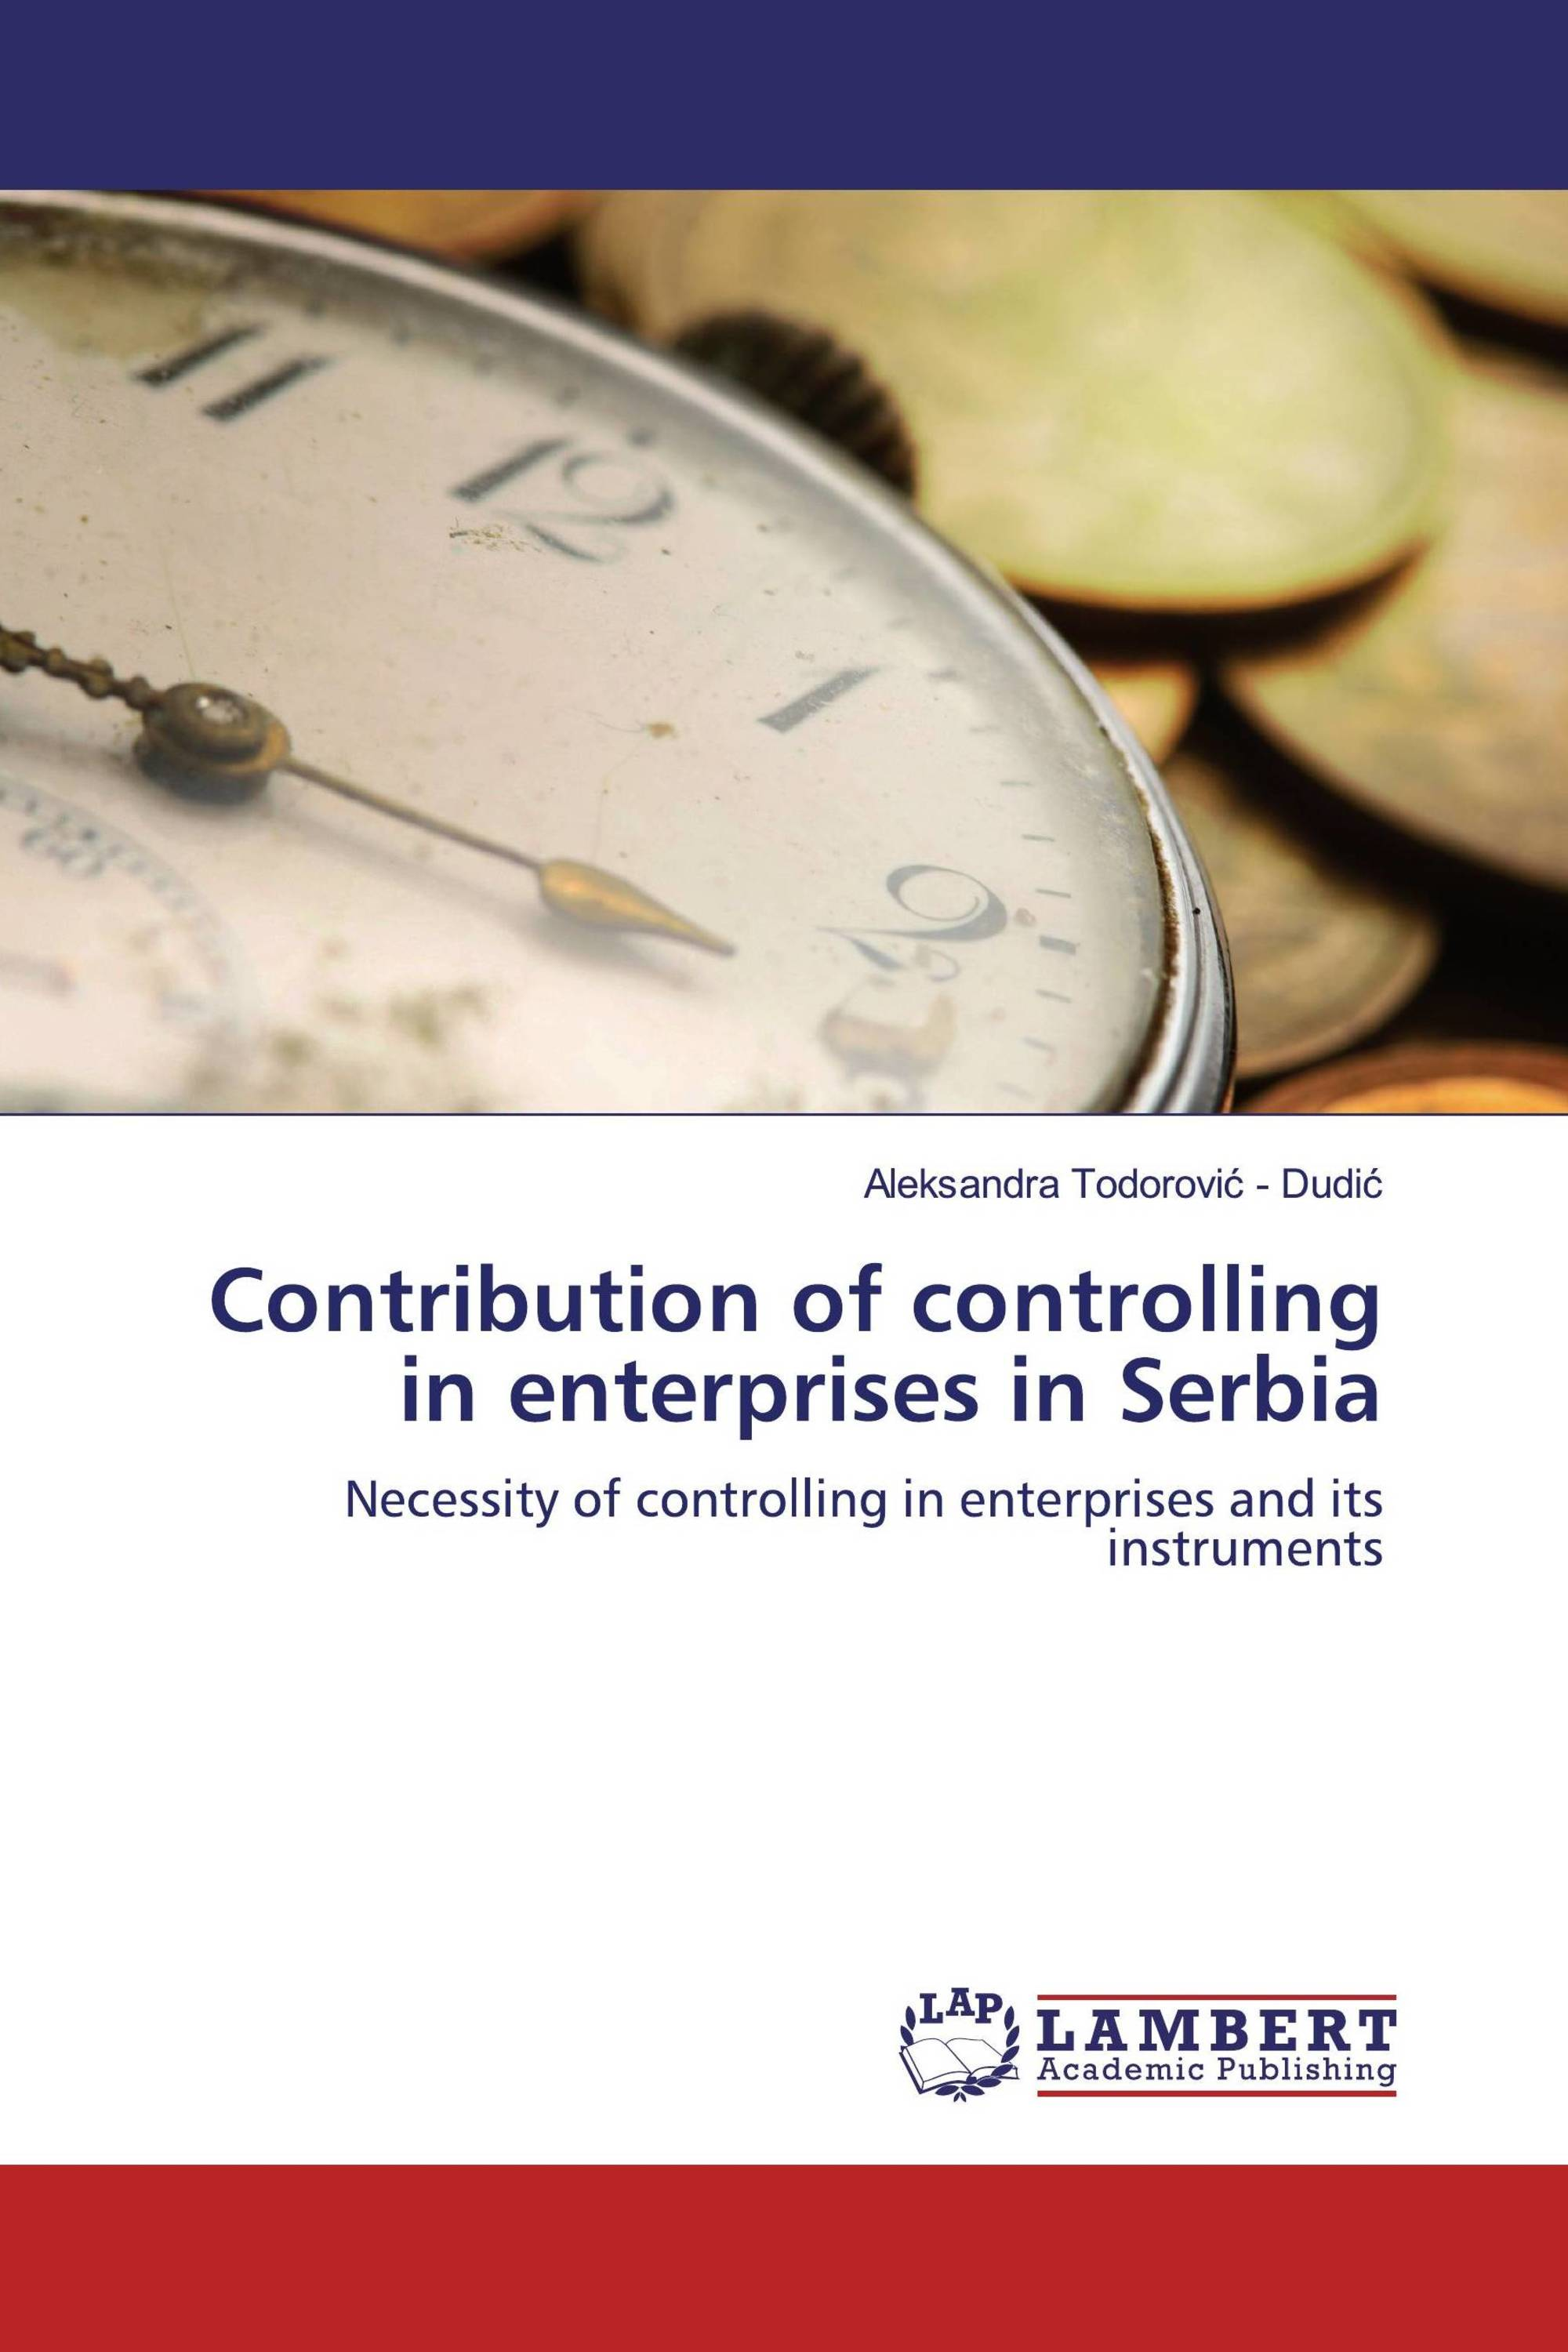 Contribution of controlling in enterprises in Serbia